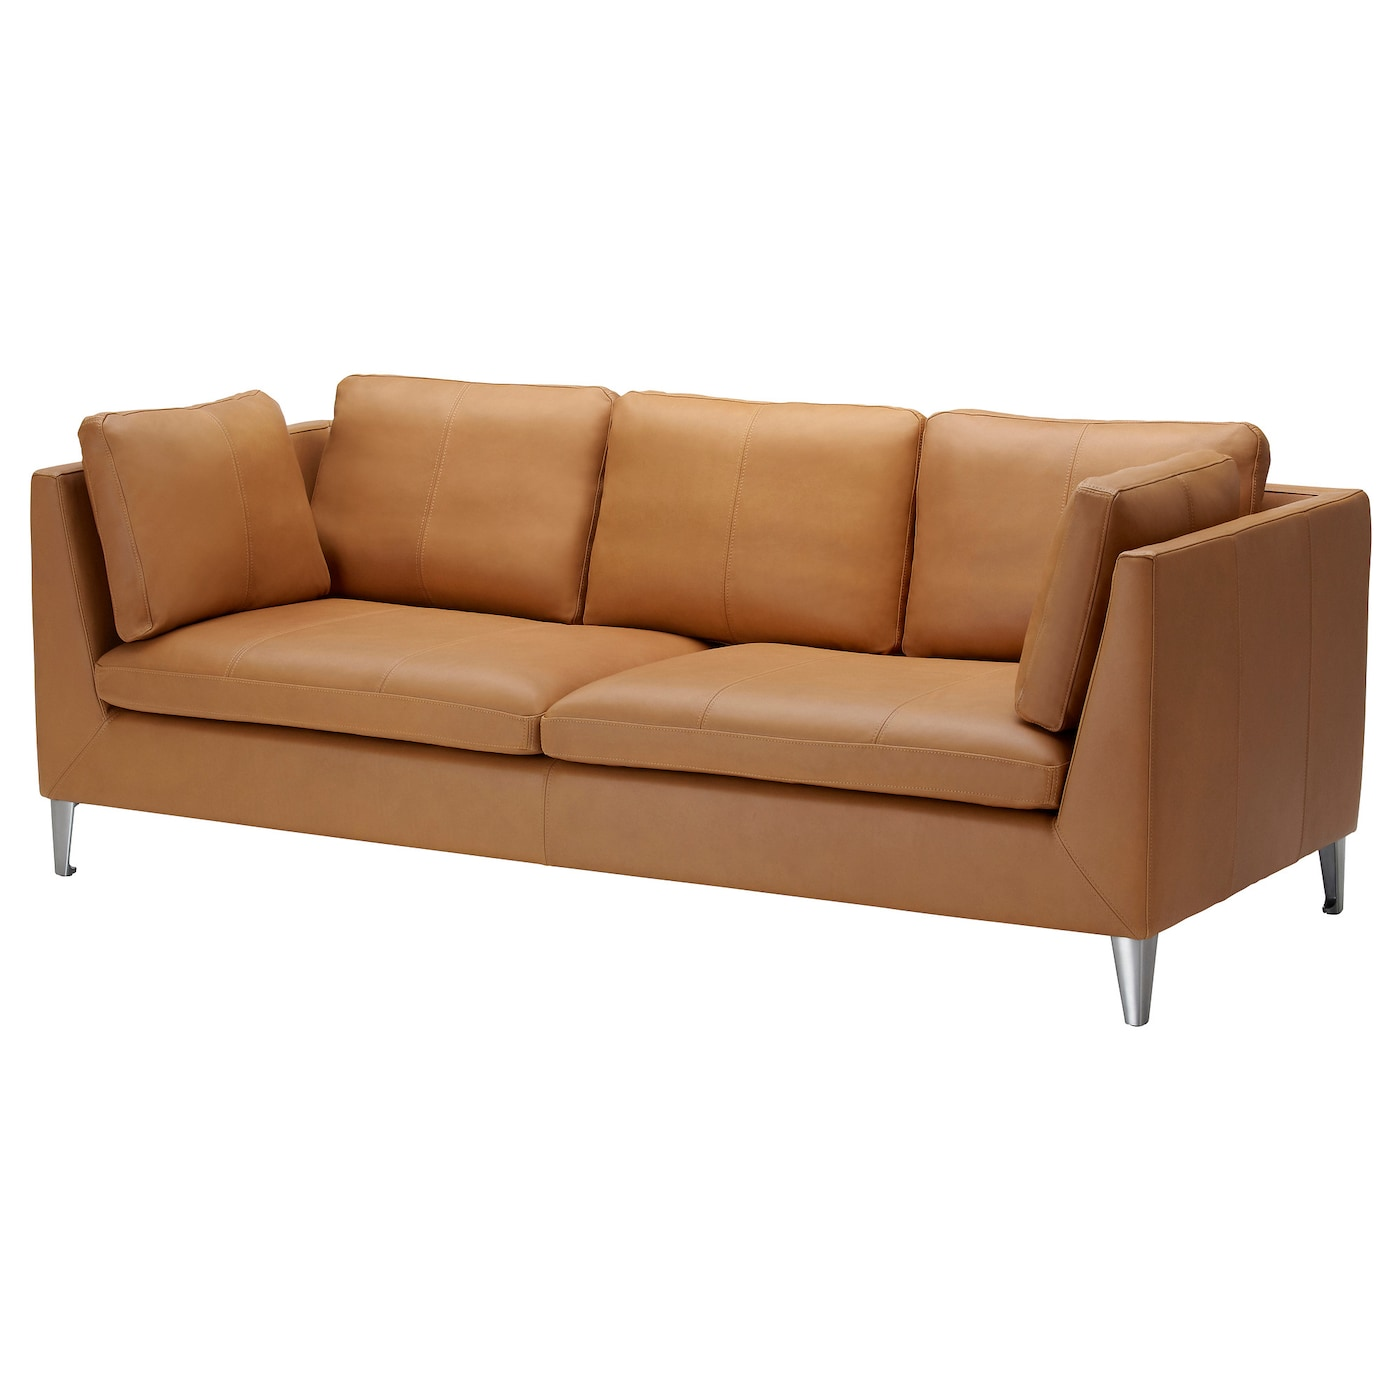 Stockholm three seat sofa seglora natural ikea for Leather furniture